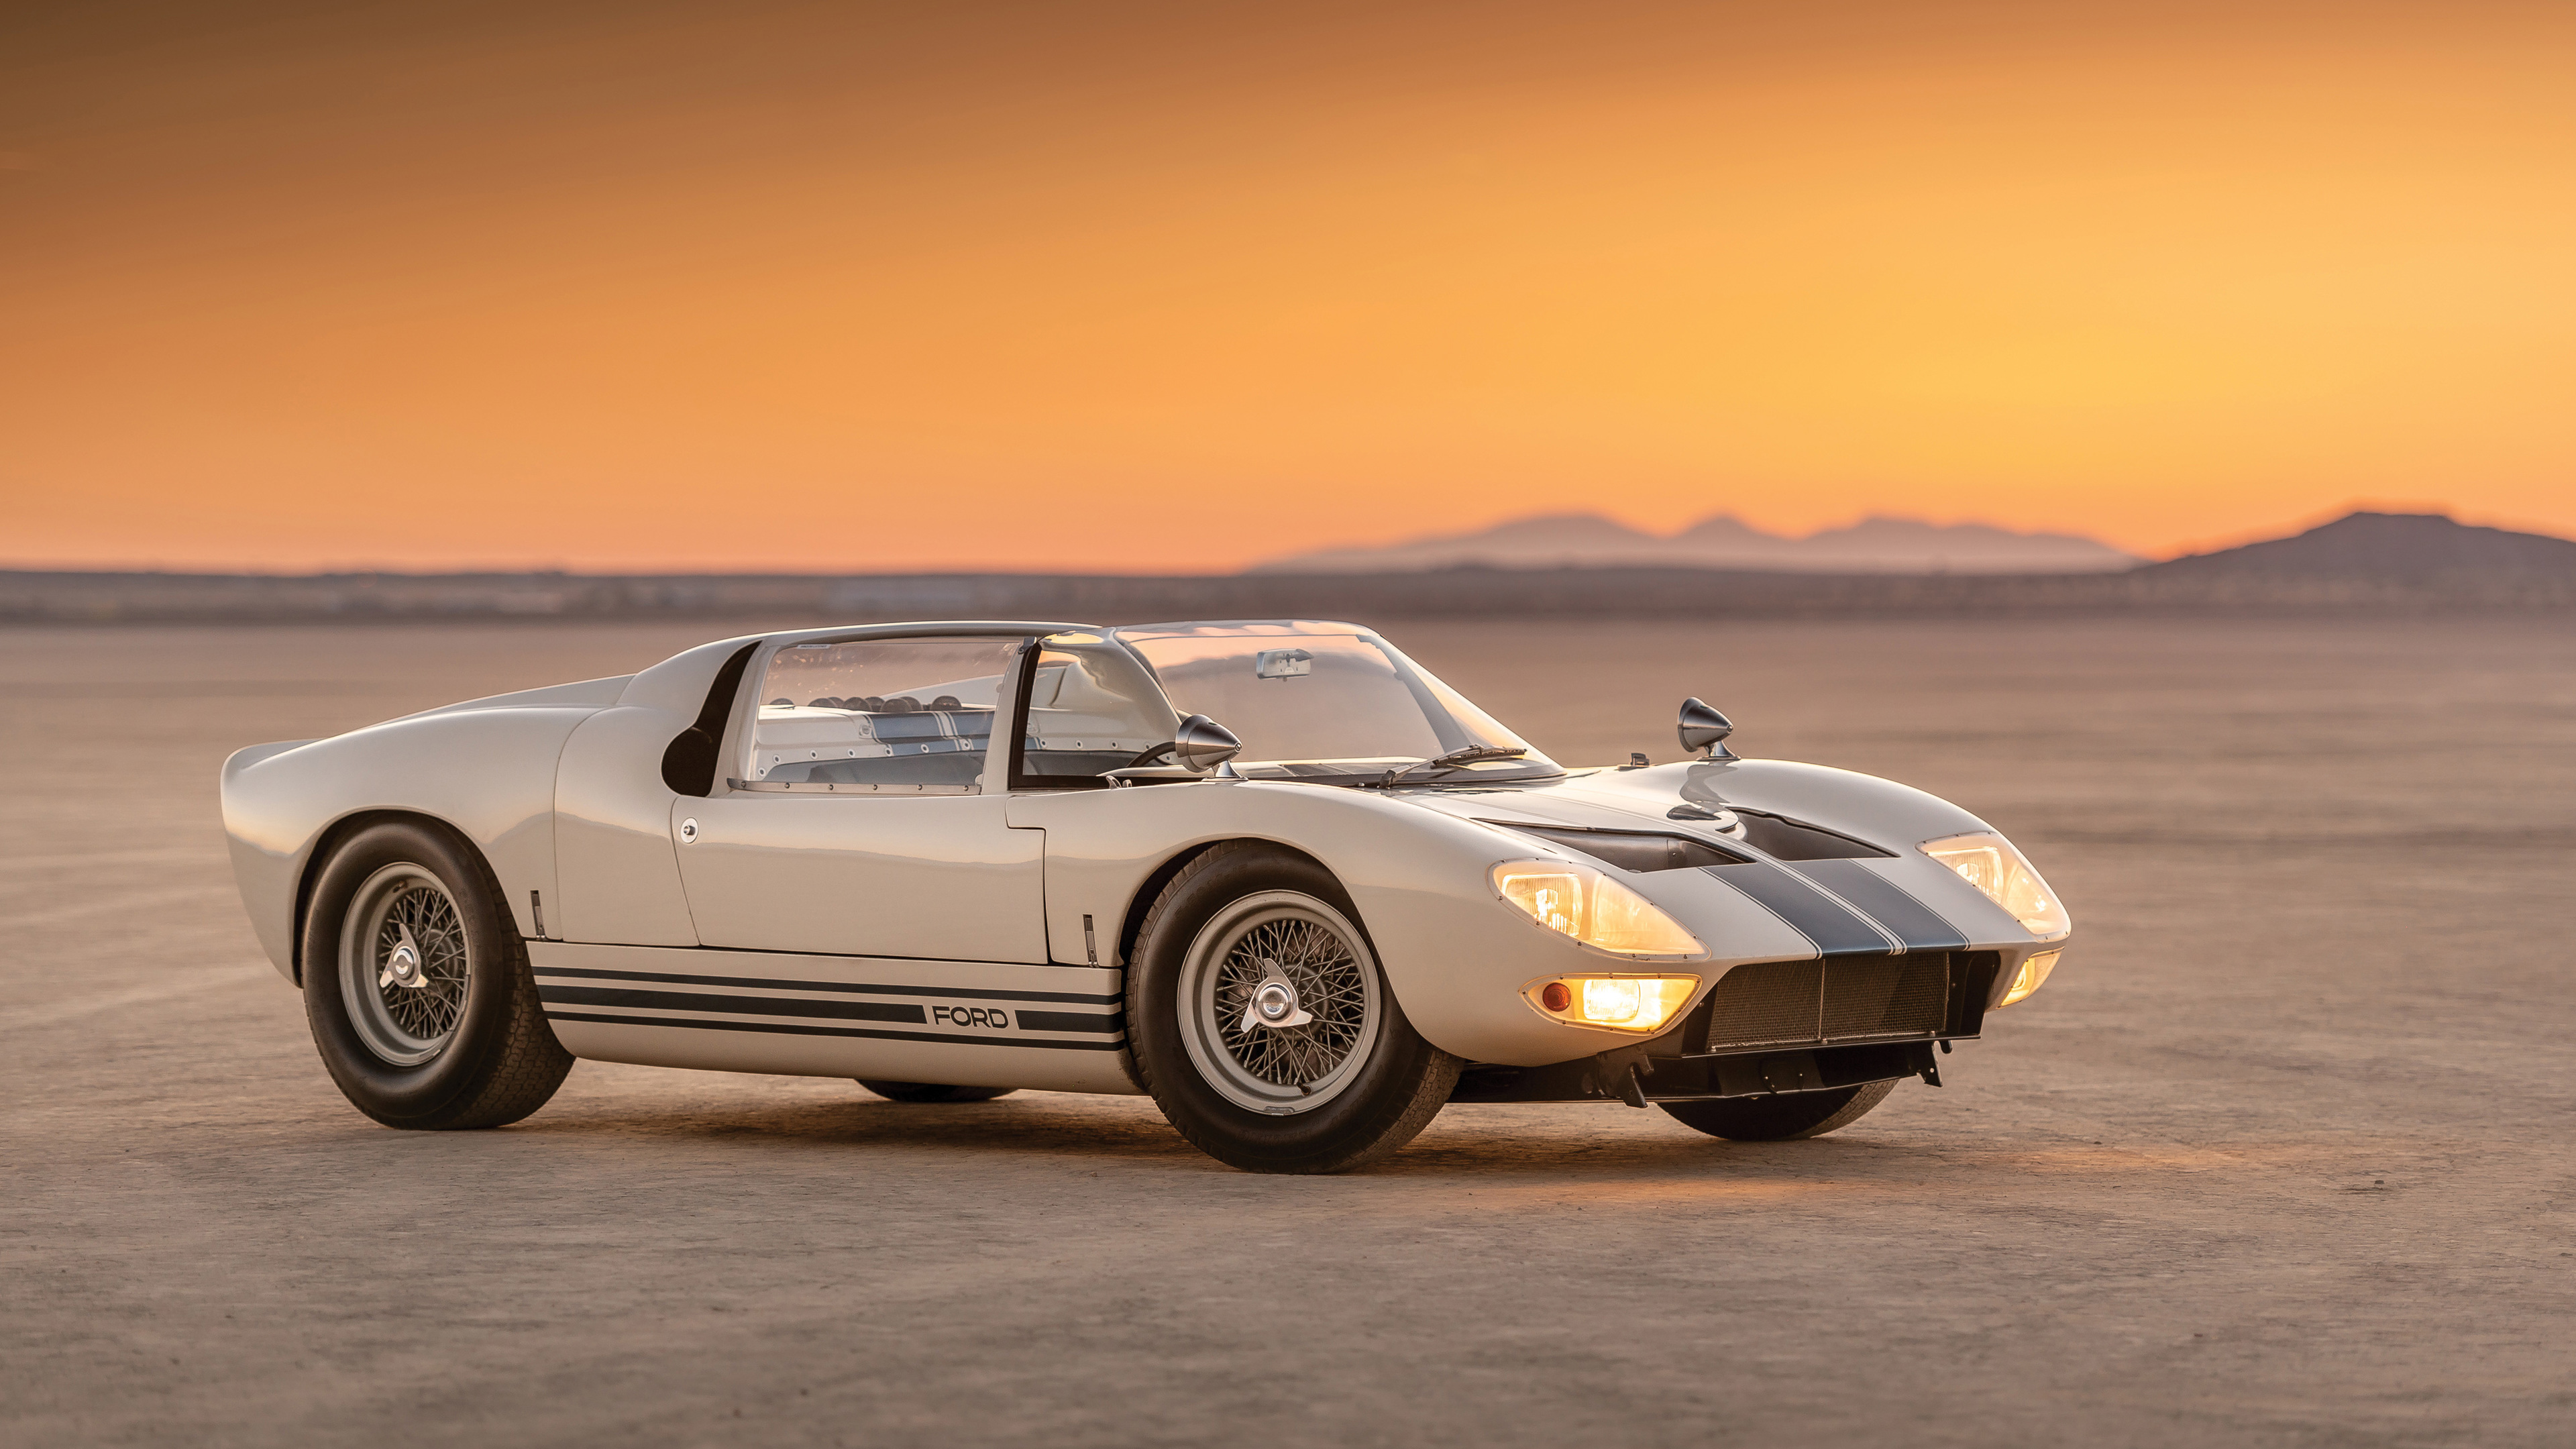 ford gt roadster prototype 1965 1565054775 - Ford GT Roadster Prototype 1965 - hd-wallpapers, ford wallpapers, ford gt wallpapers, classic cars wallpapers, cars wallpapers, 4k-wallpapers